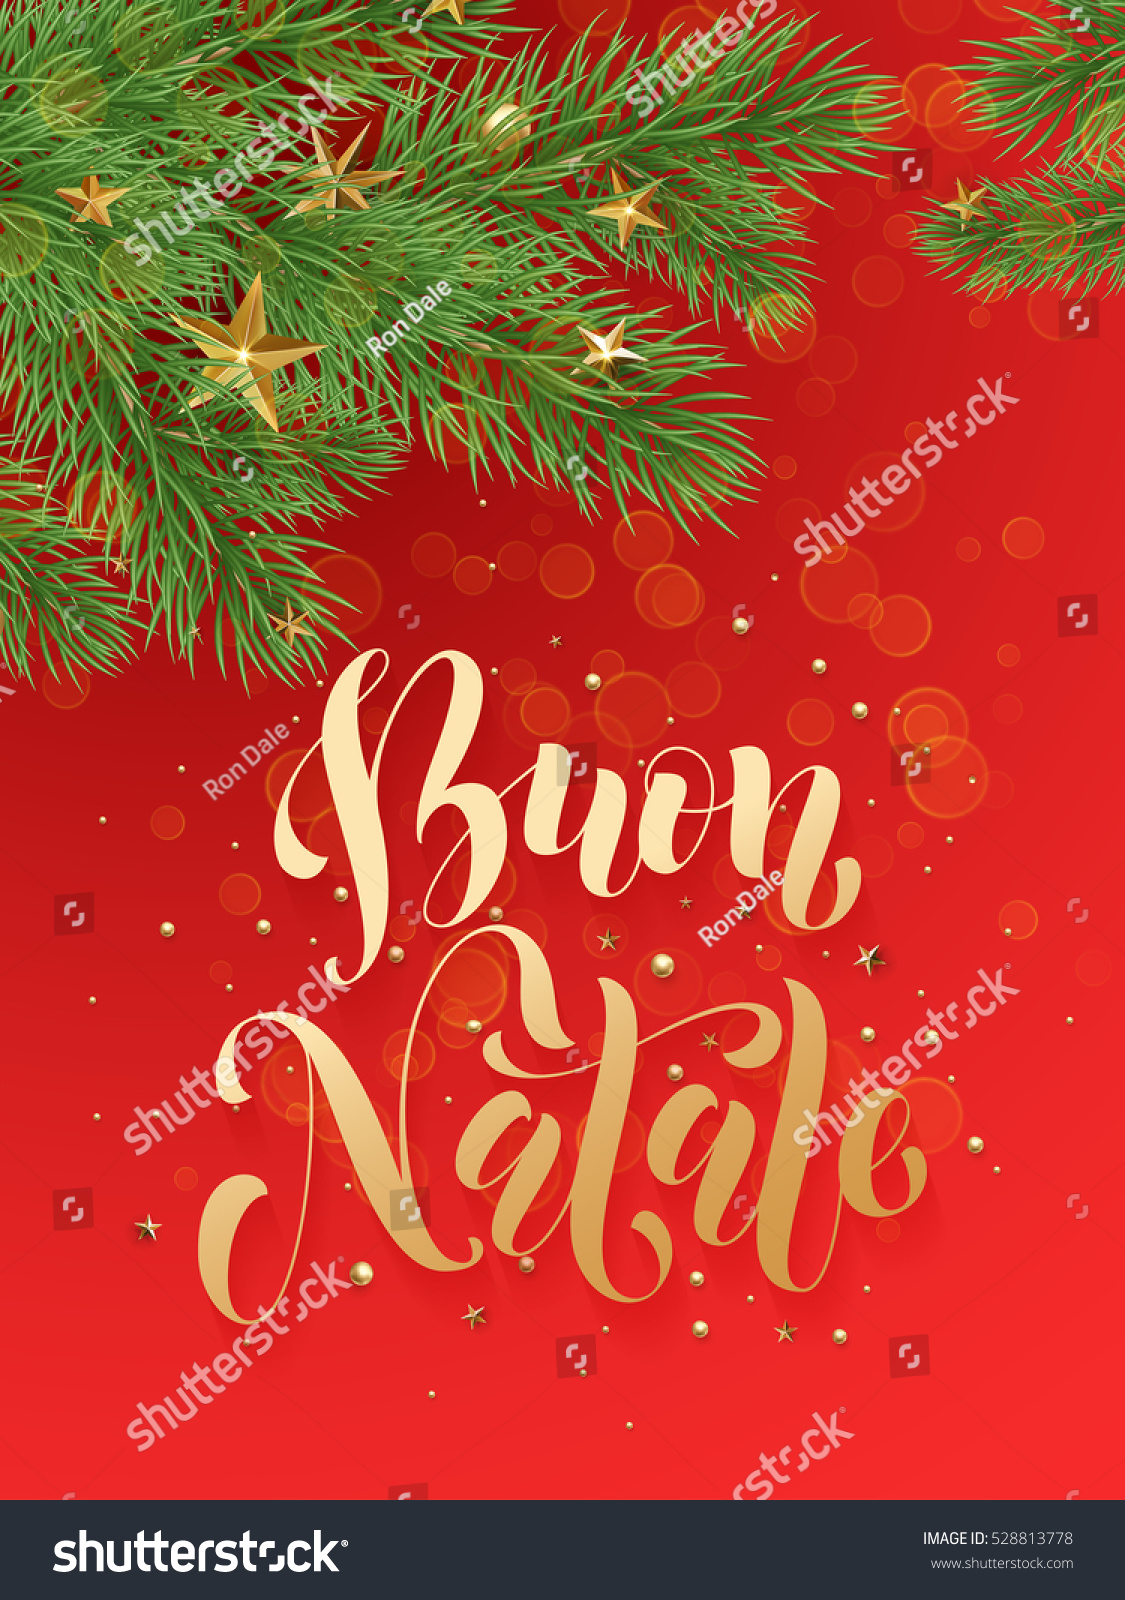 buon natale italian merry christmas background decoration ornaments of gold stars golden balls christmas - Italian For Merry Christmas